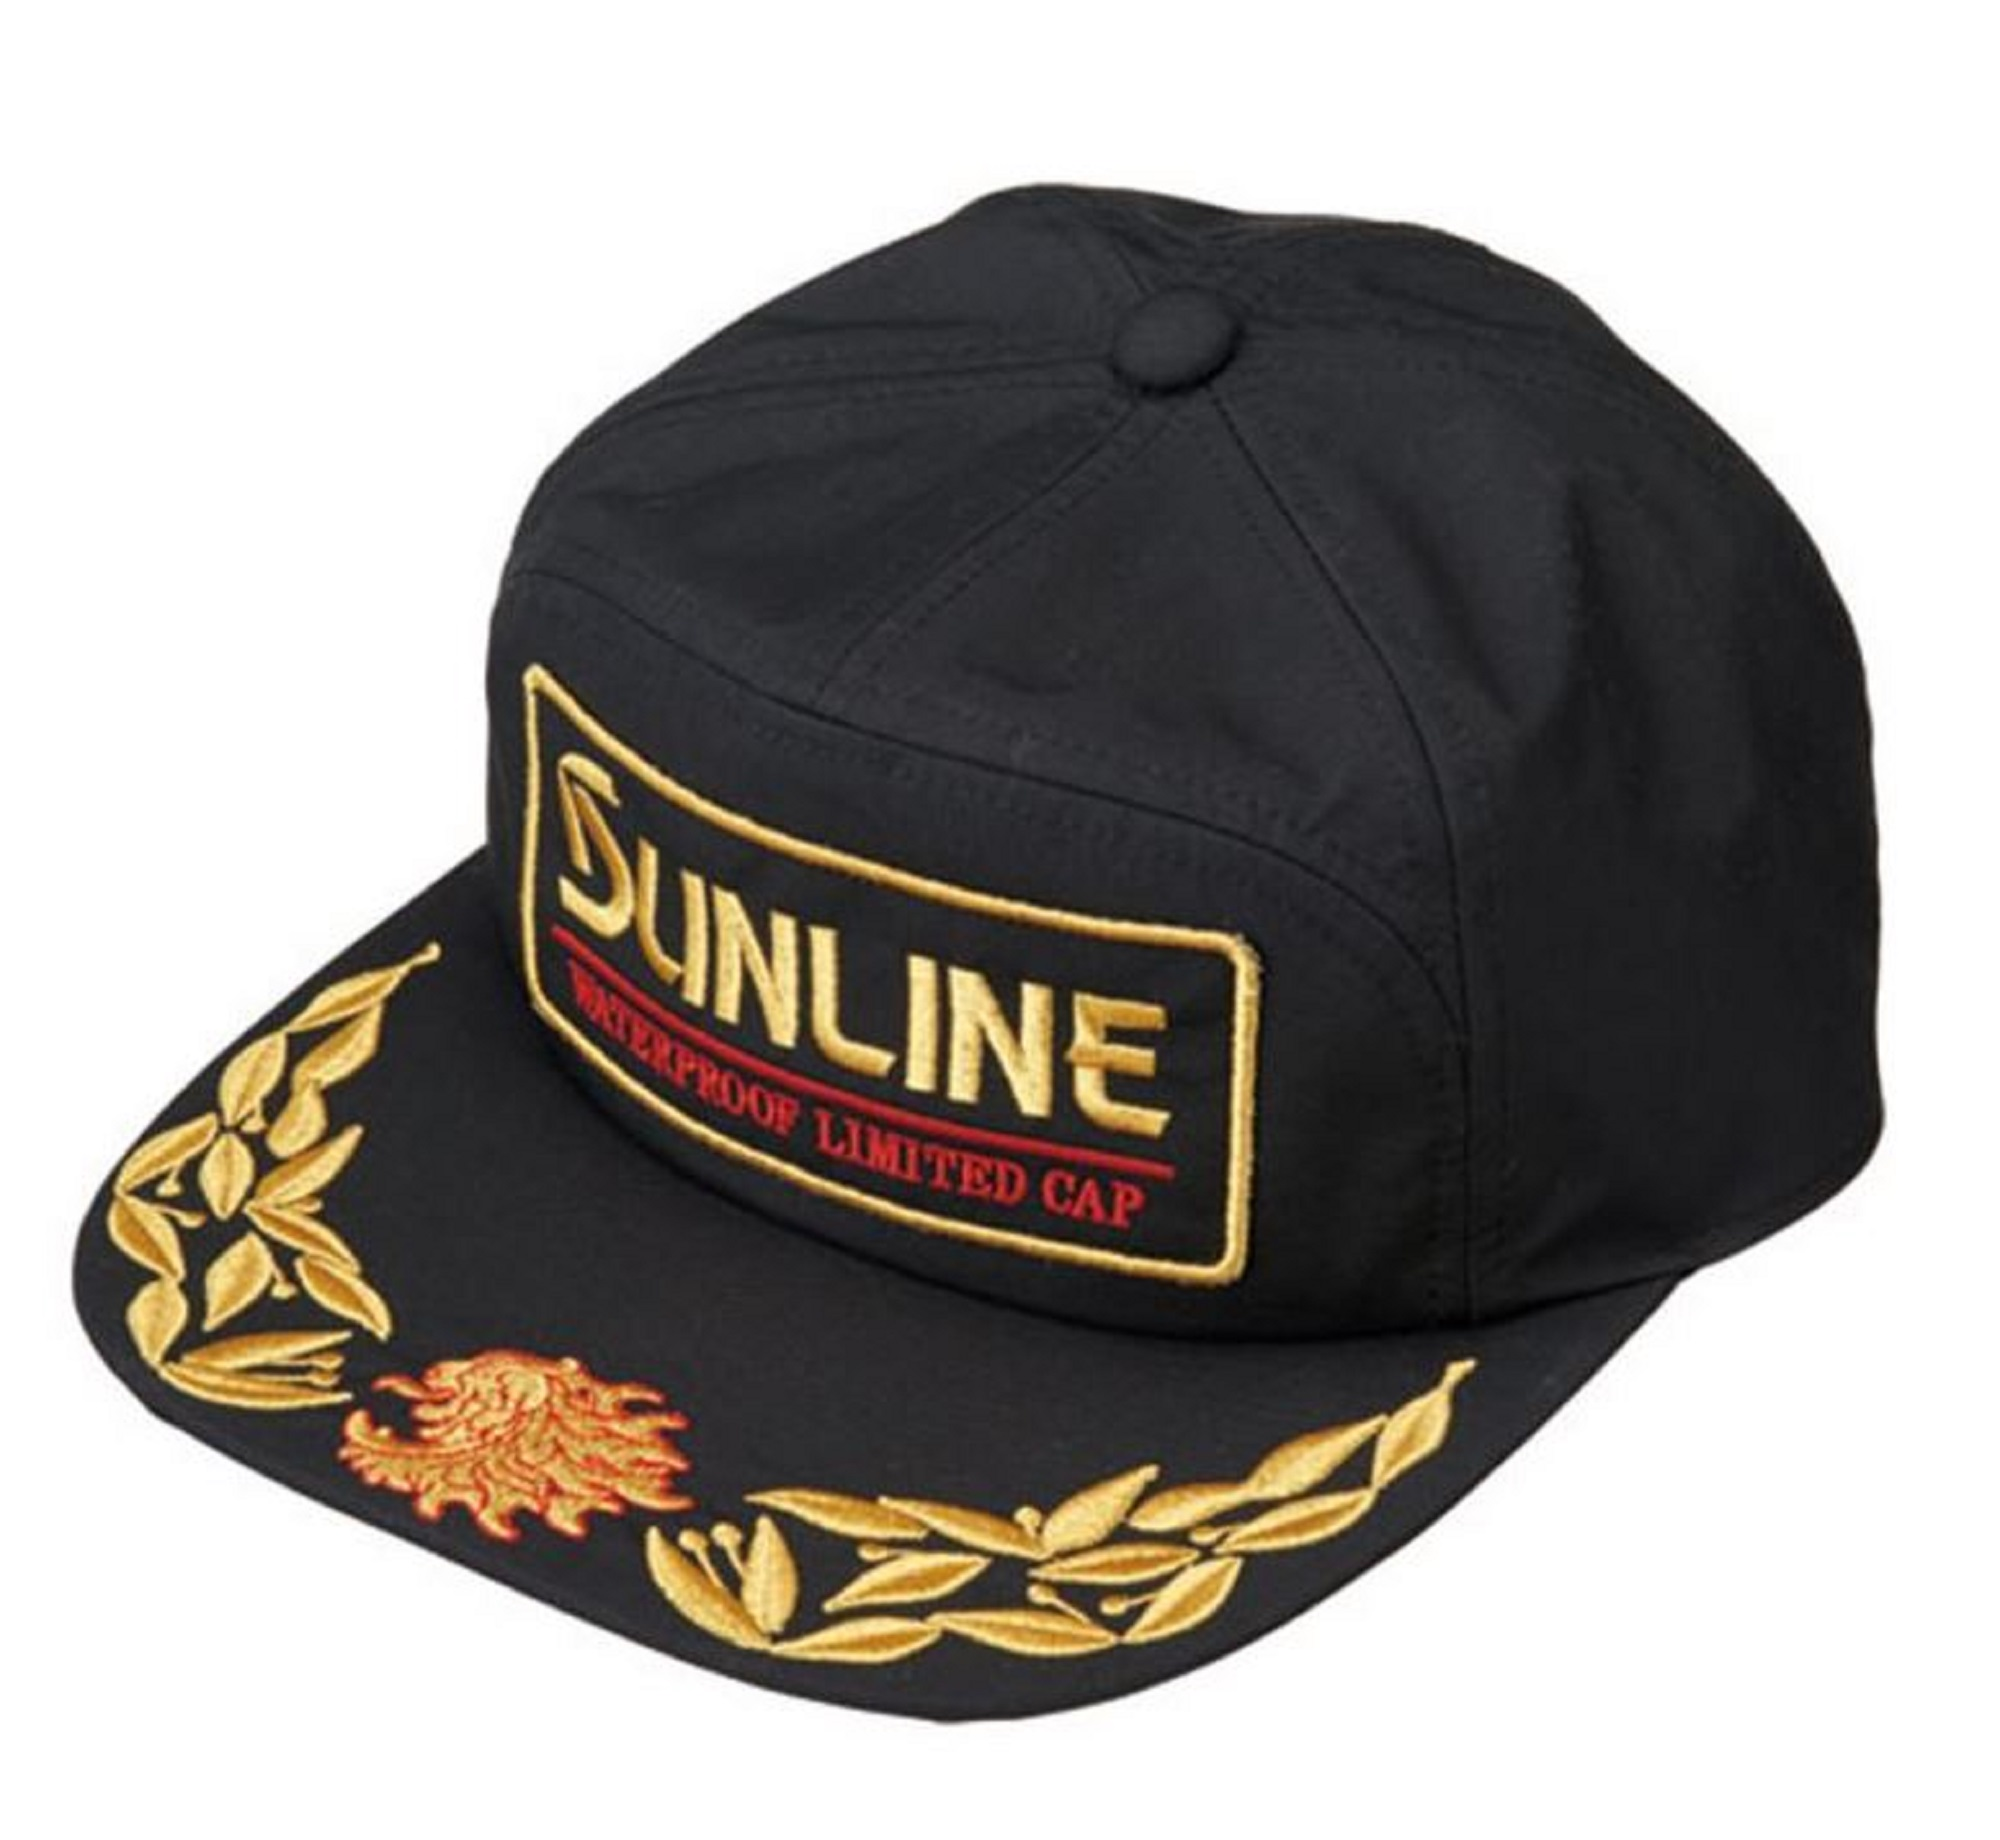 Sunline Cap S-Dry CP-2600 Limited Waterproof (2951)